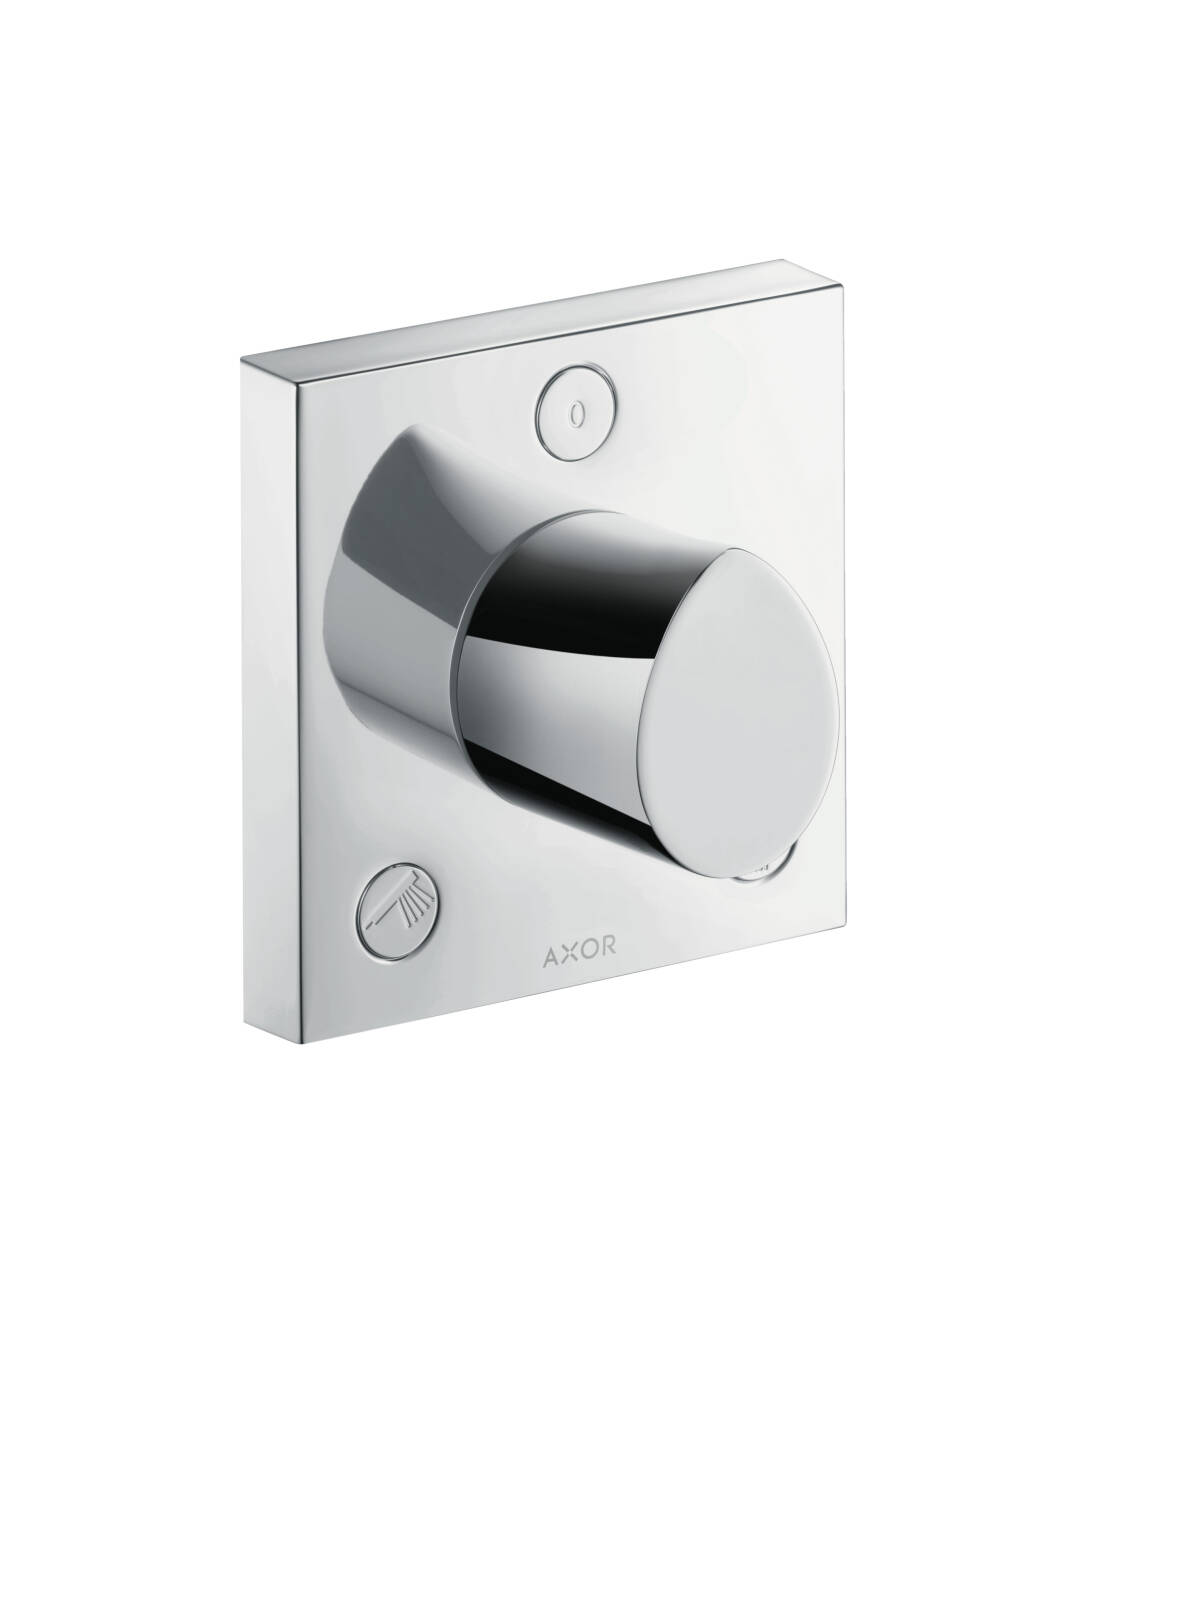 Shut-off/ diverter valve Trio/ Quattro 120/120 for concealed installation, Brushed Brass, 12731950